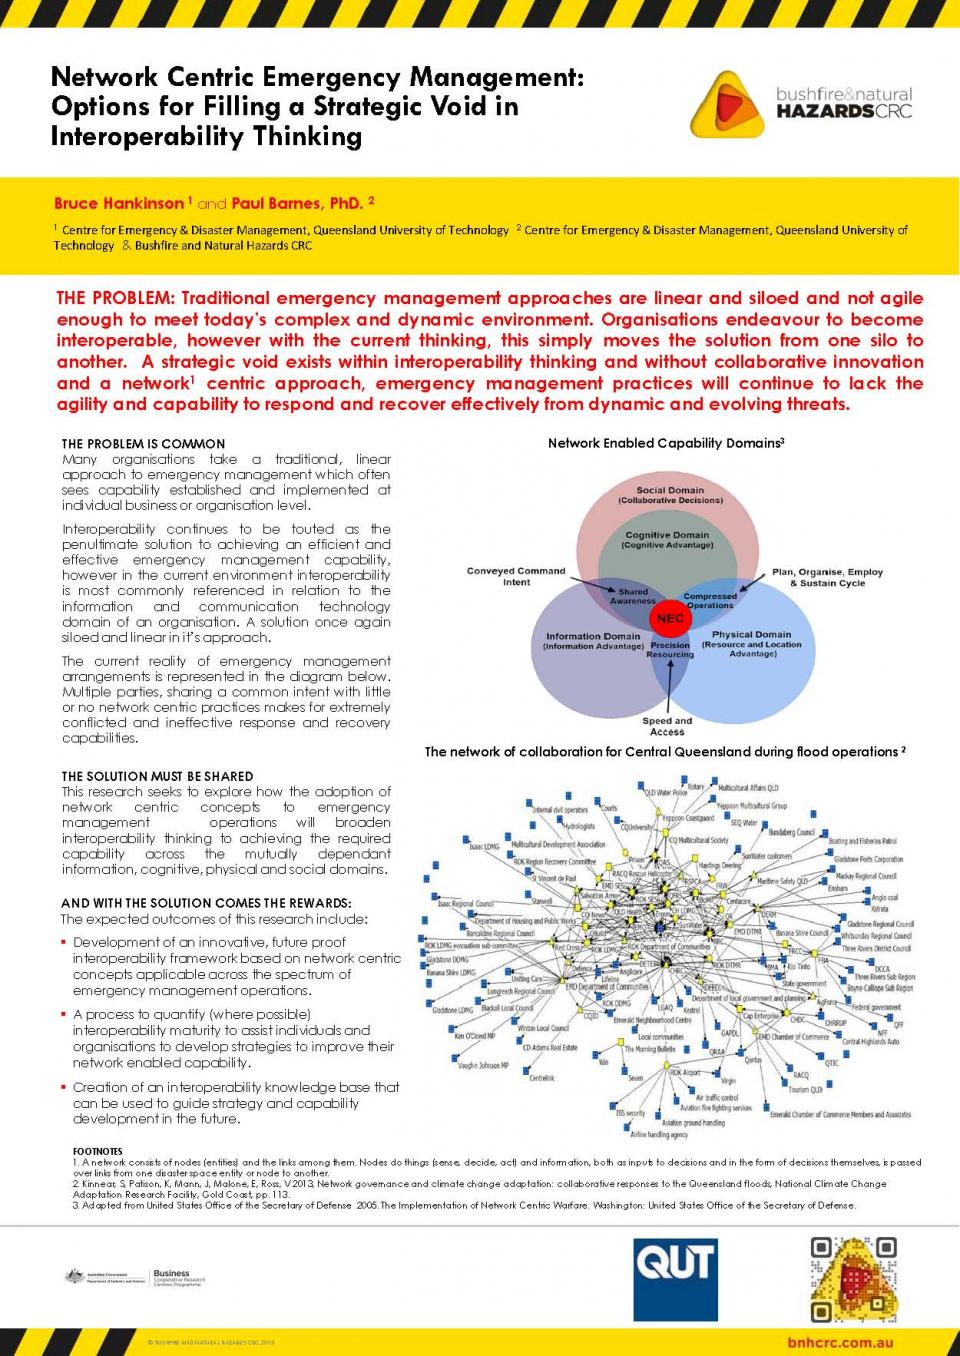 Network Centric Emergency Management: Options for Filling a Strategic Void in Interoperability Thinking